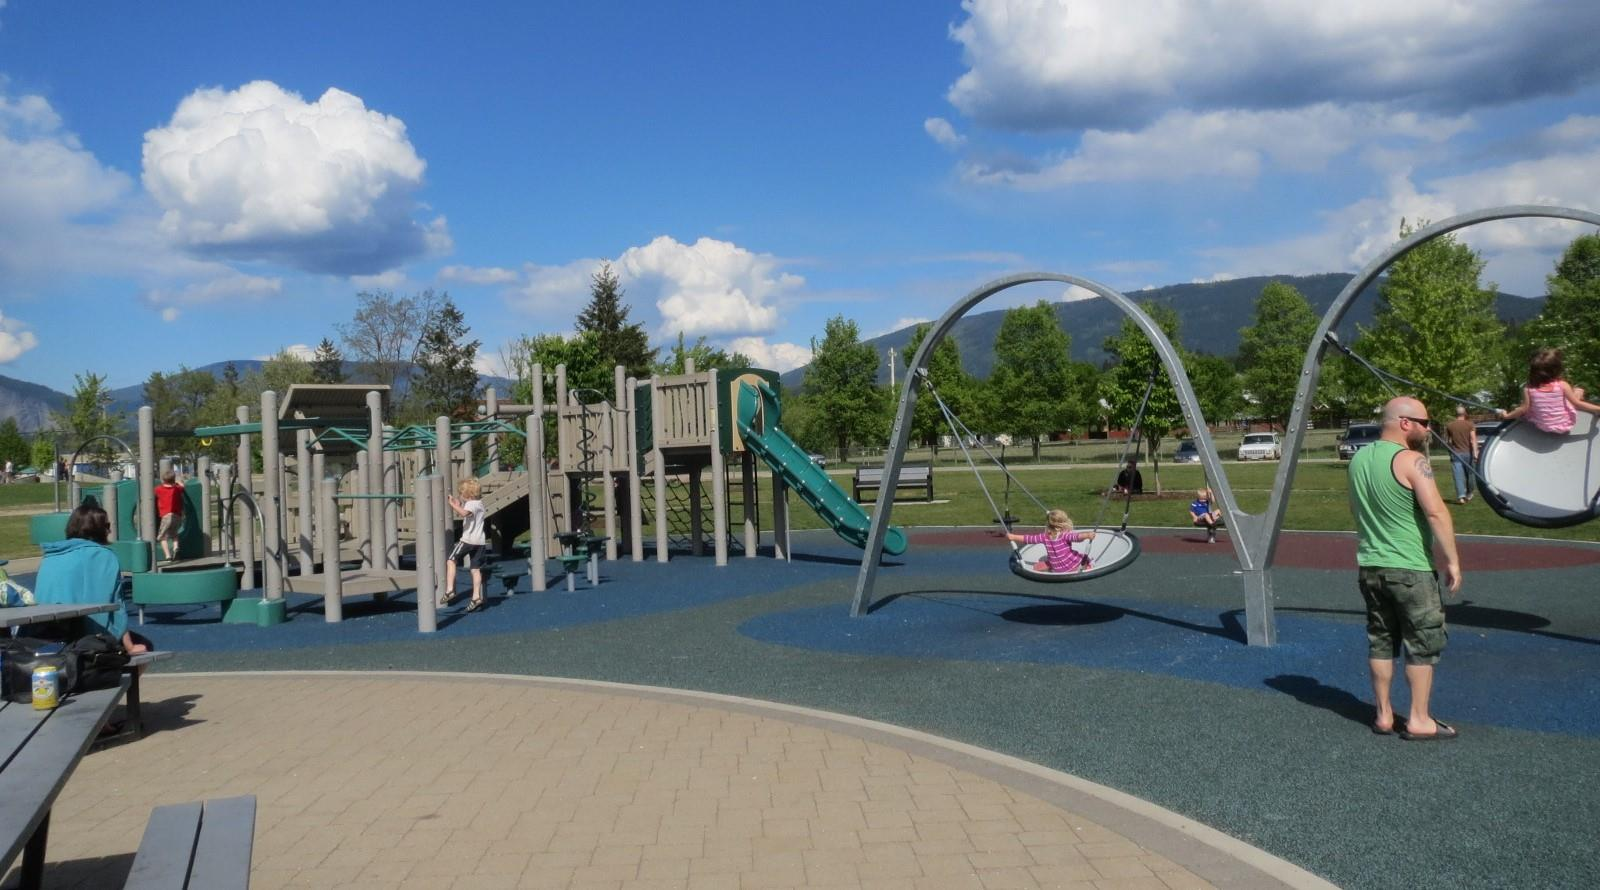 Playground at Blackburn Park